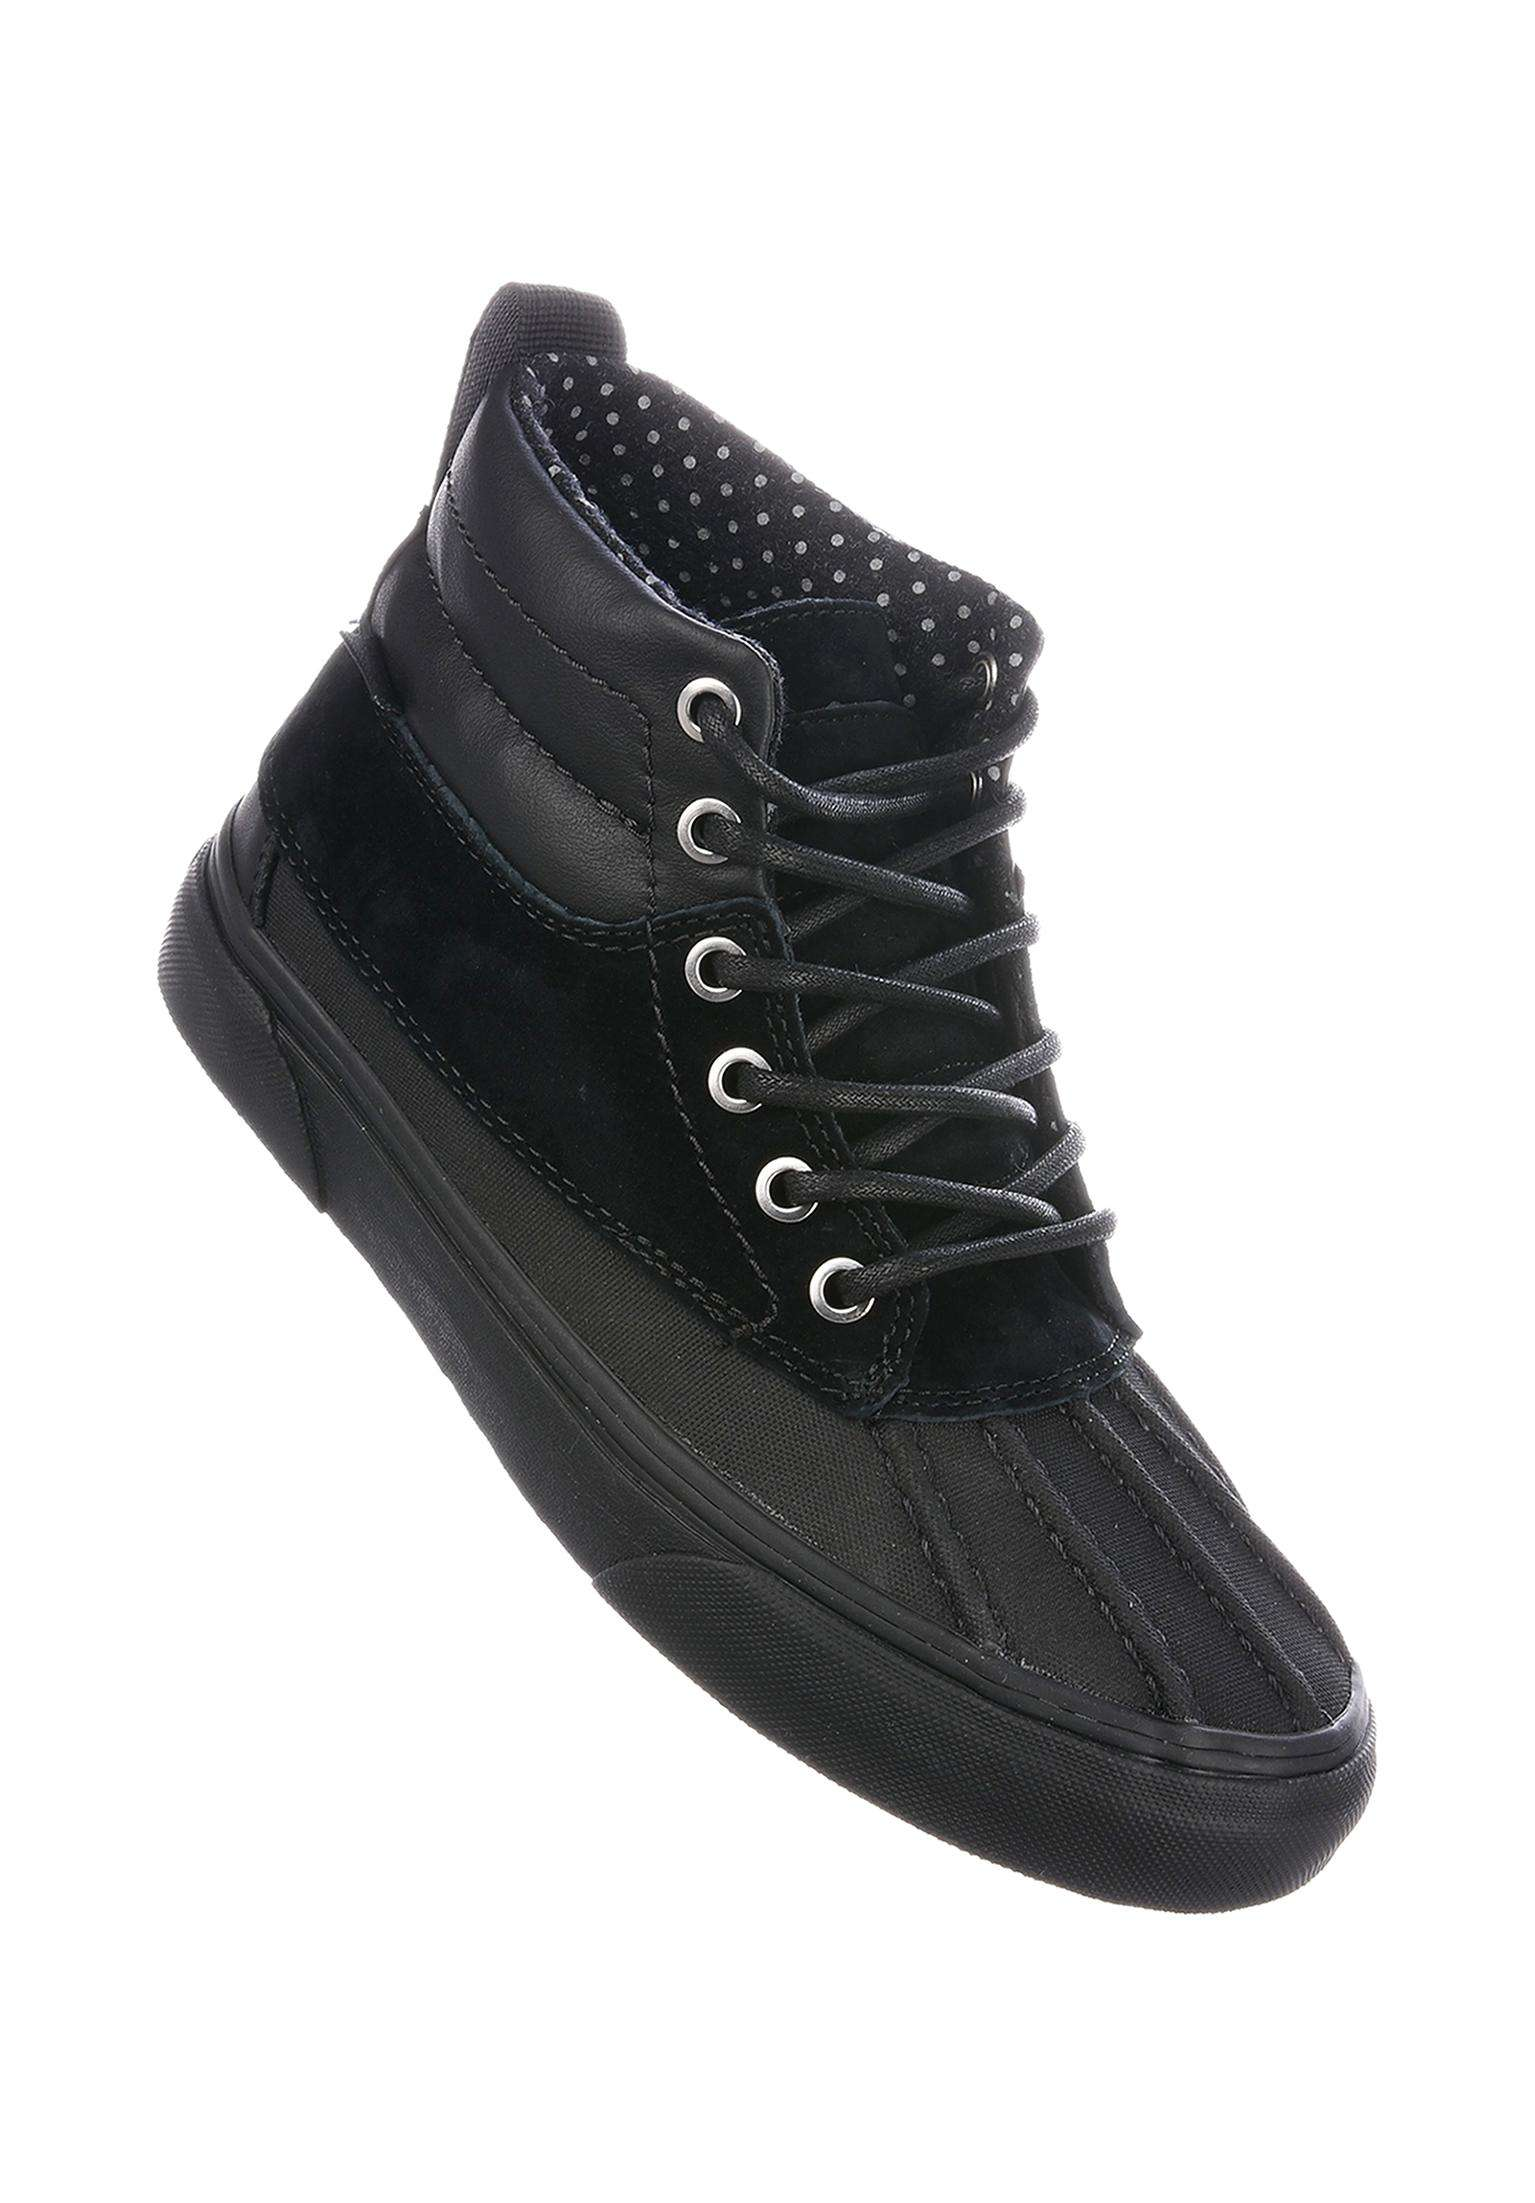 Sk8-Hi Del Pato MTE Vans All Shoes in black-polkadots for Women  00841dad2